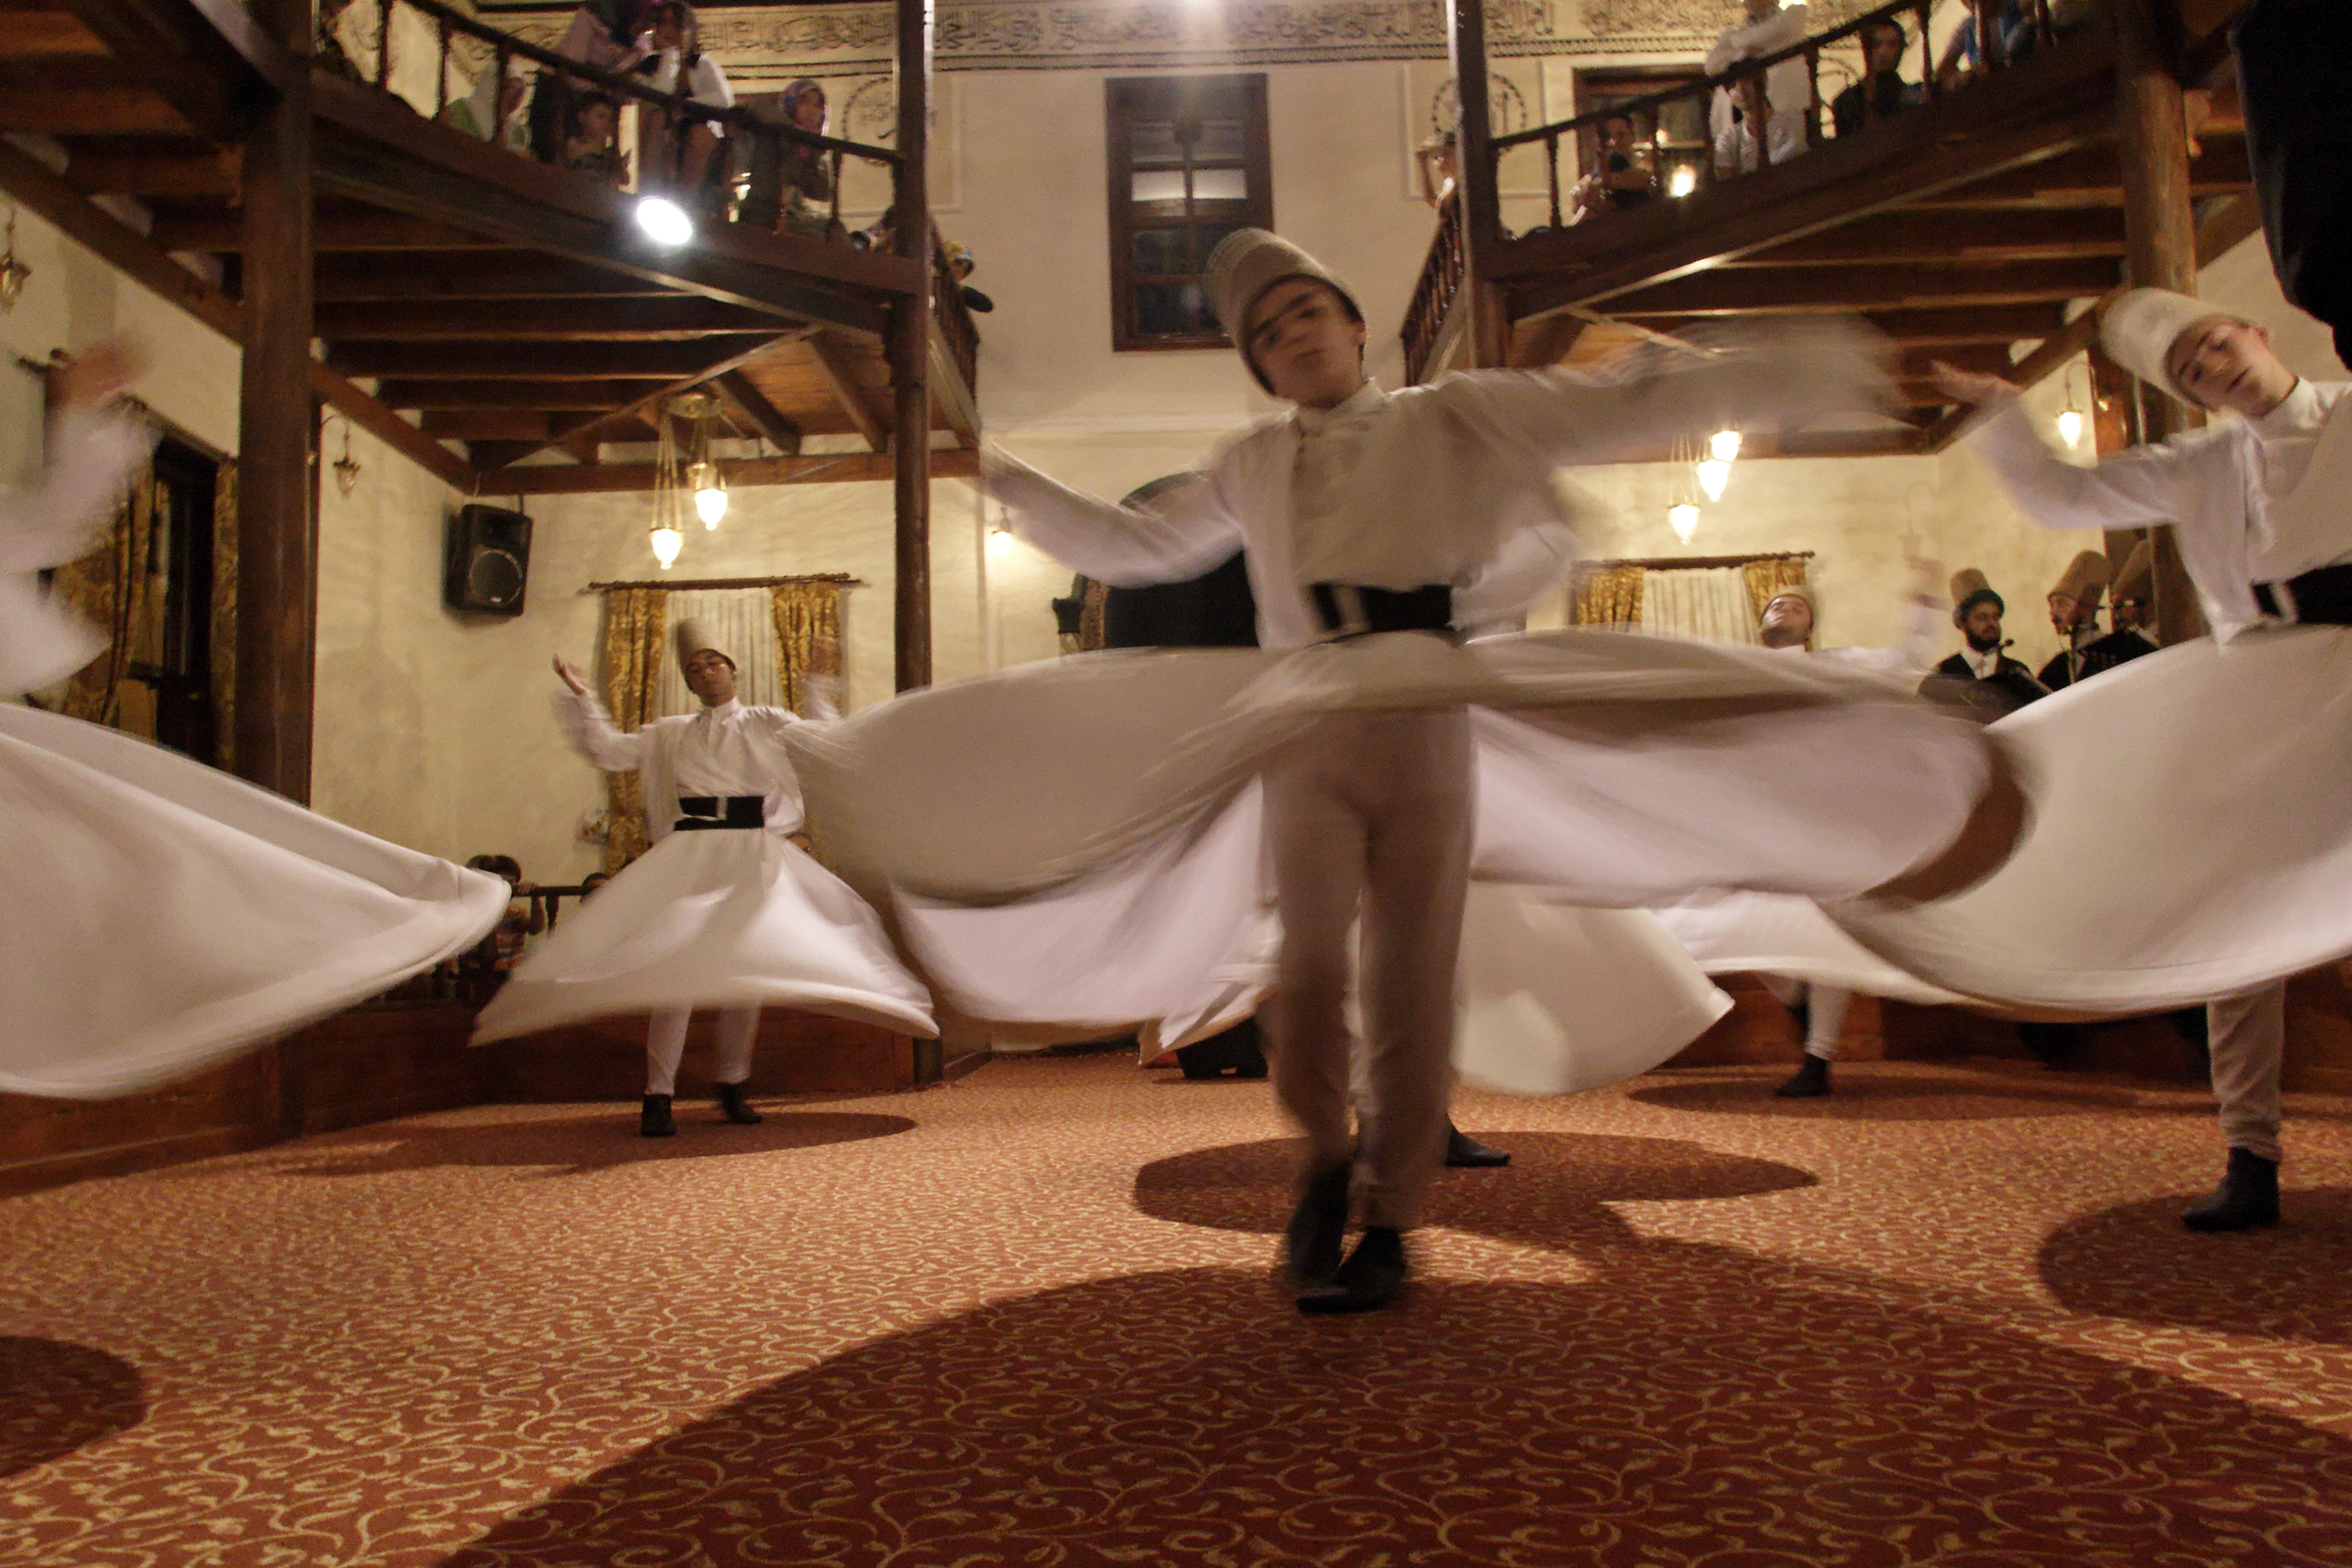 Whirling Dervishes, Bursa Turkey 6.jpg - Whirling Dervishes, Bursa, Turkey